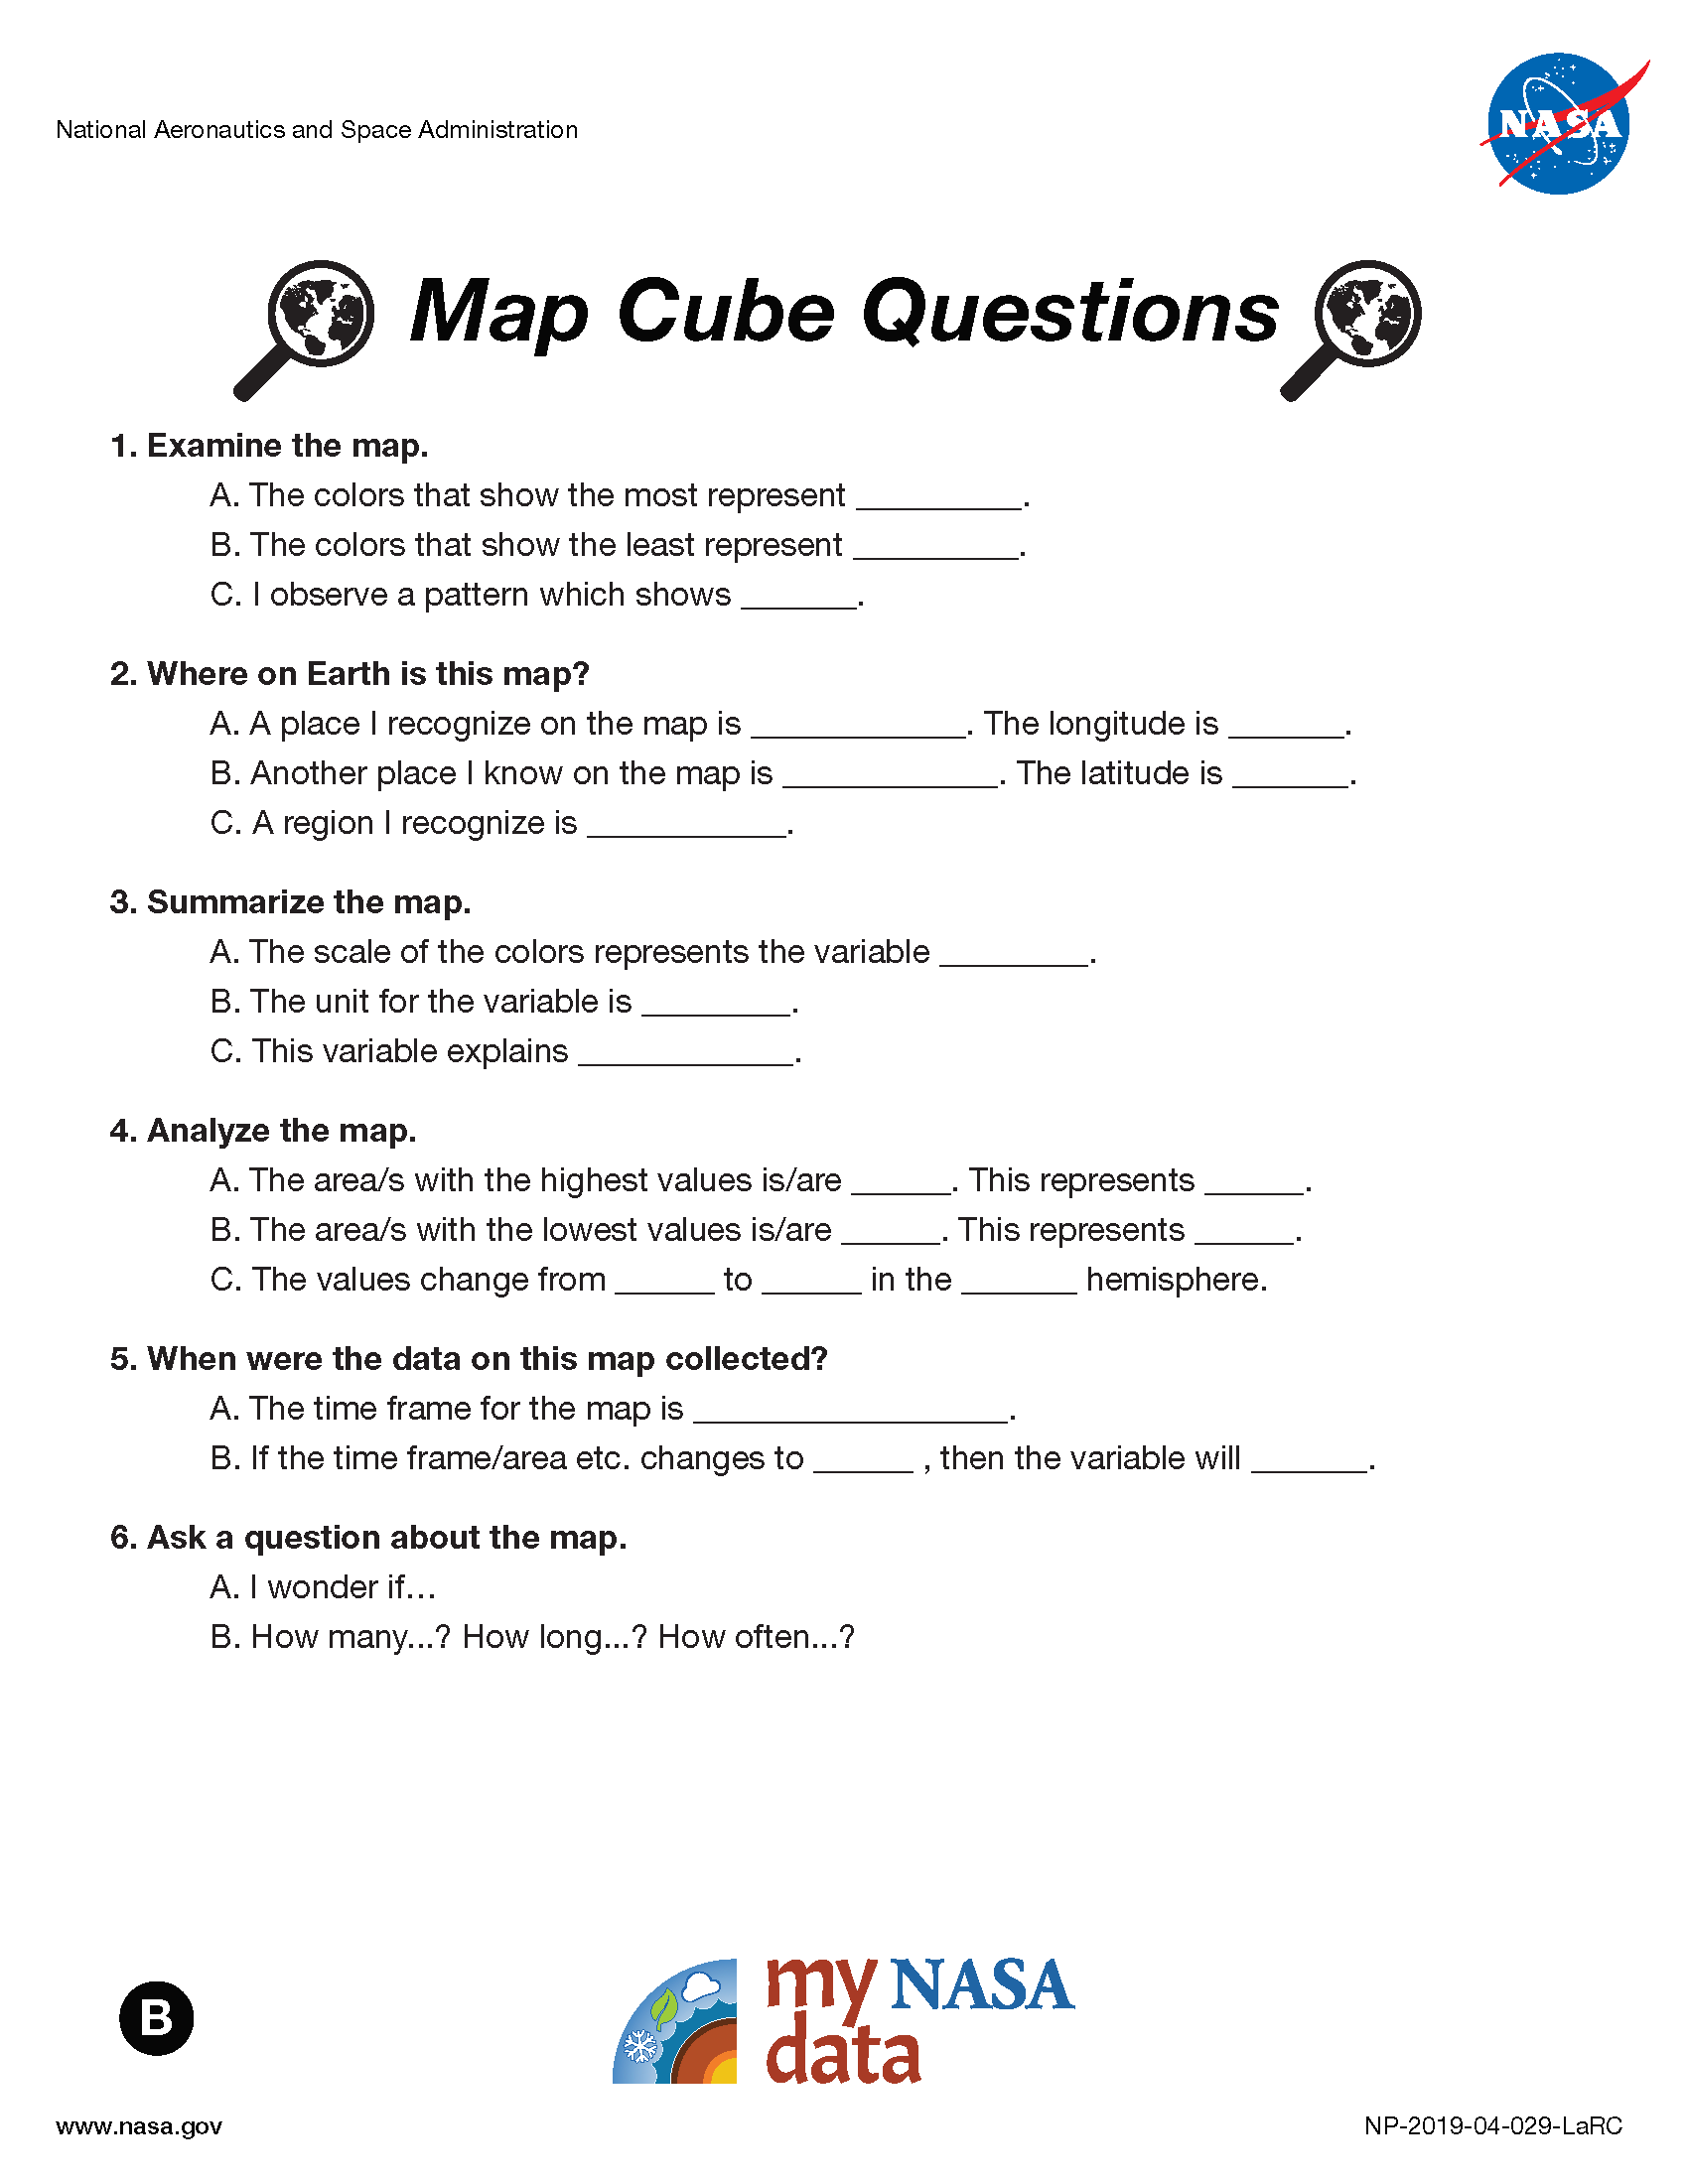 My NASA Data - Data Literacy Cubes - Map Cube Questions - Intermediate